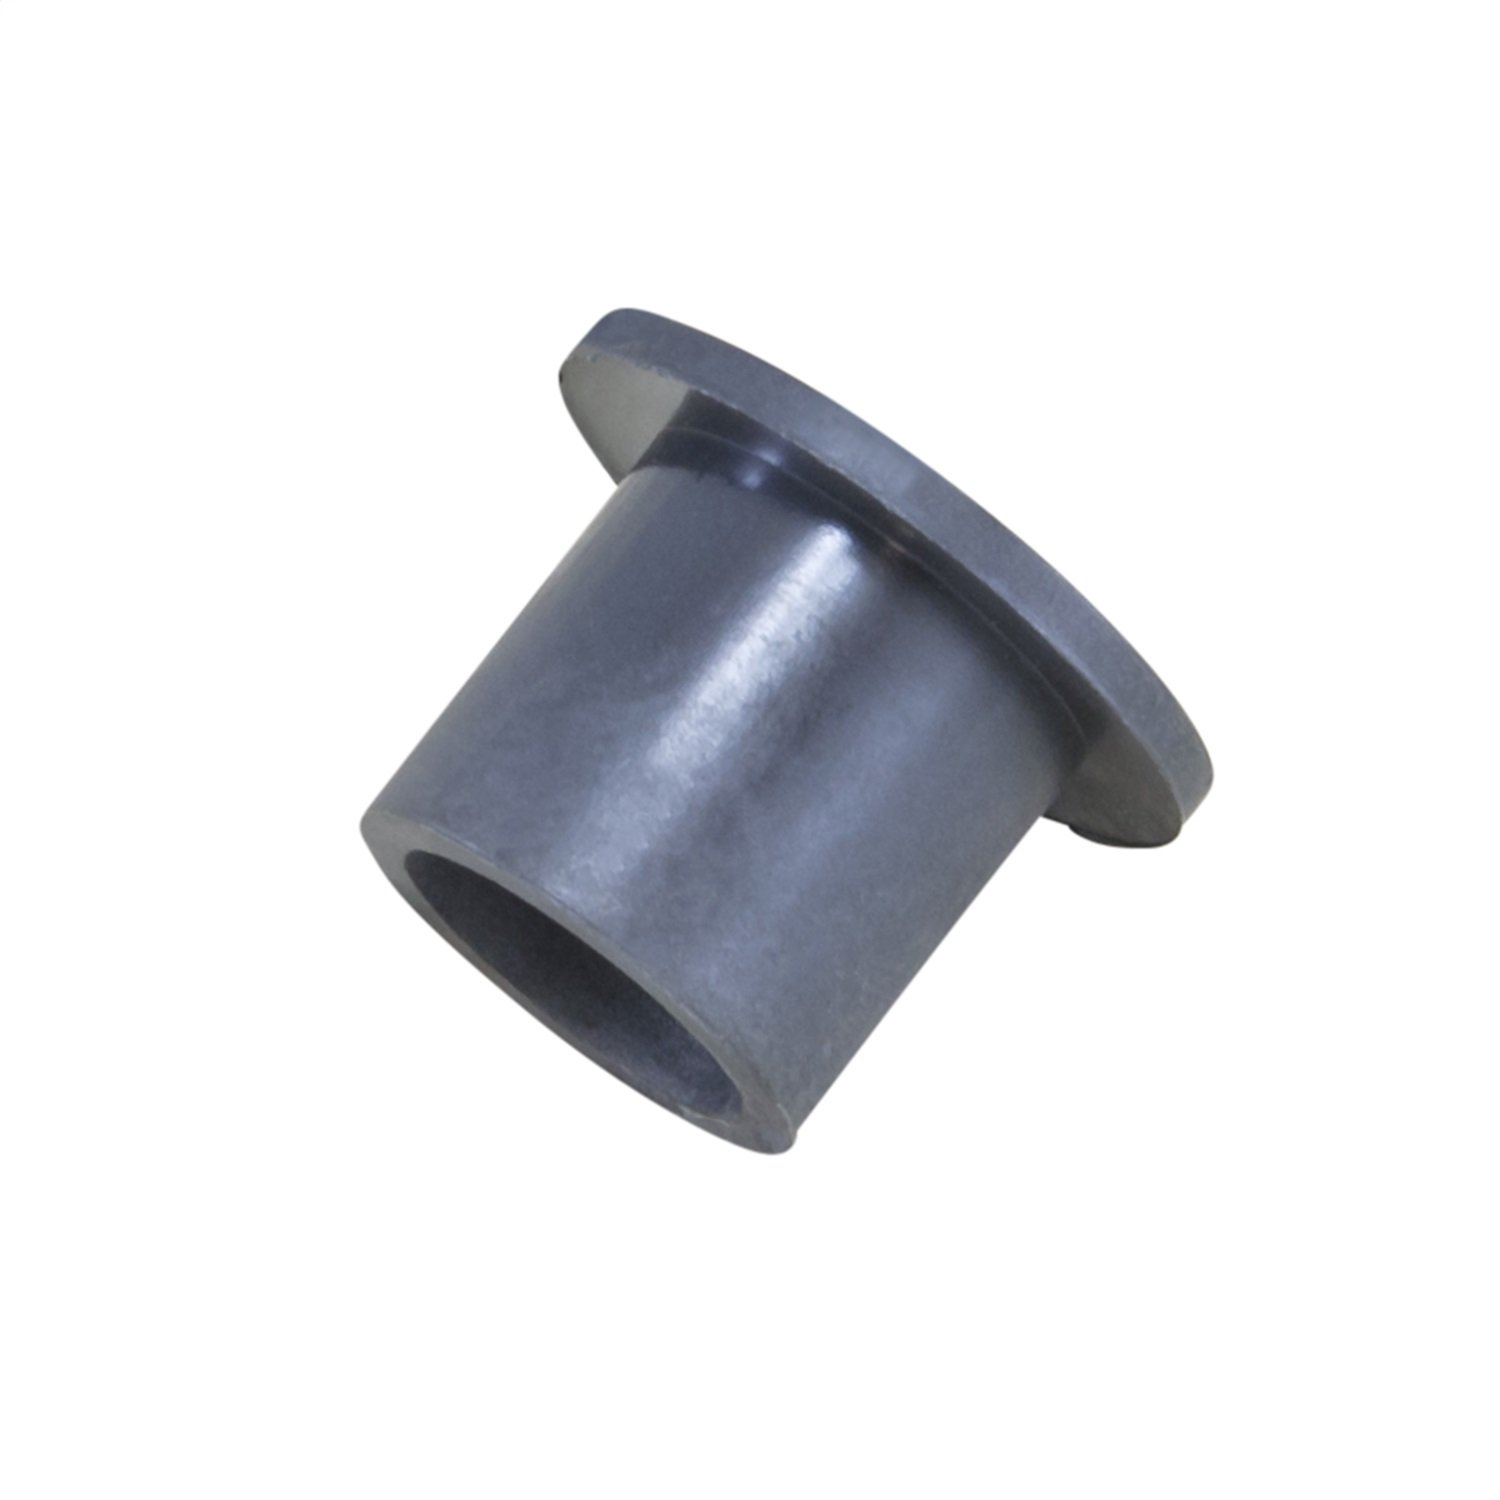 Yukon (YB AX-014) Intermediate Axle Shaft Bushing for Dana 30/44 Differential Yukon Gear